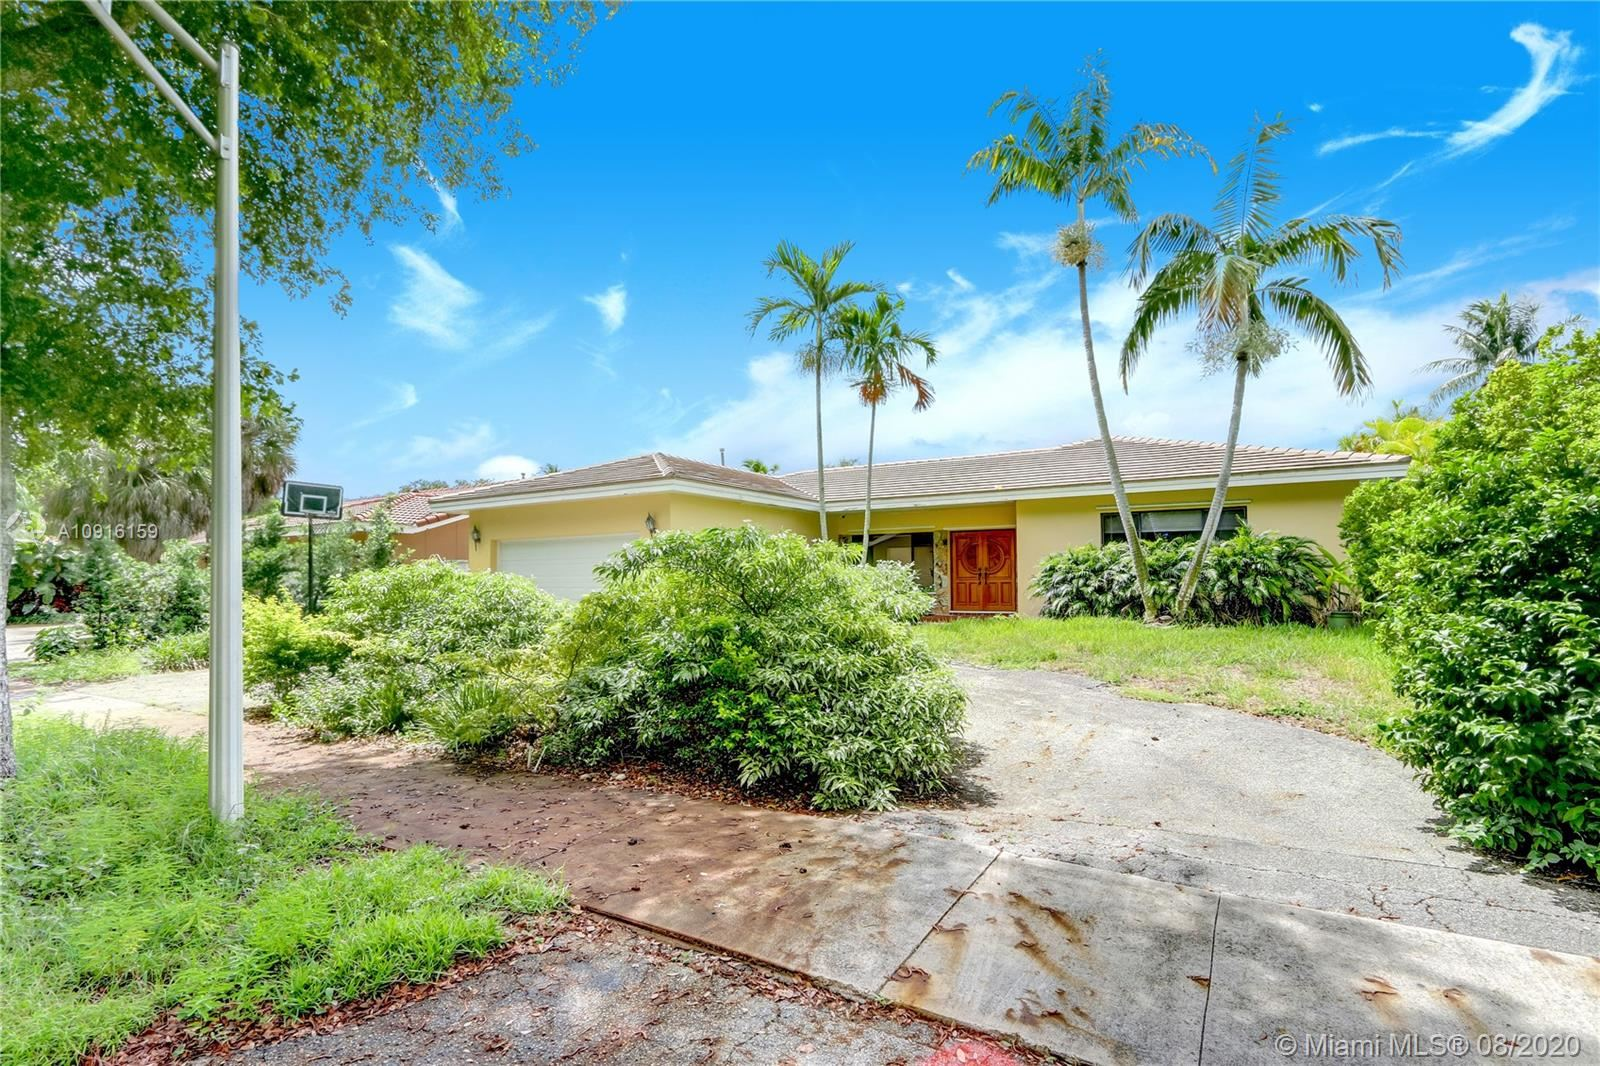 8490 Dundee Ter, Miami Lakes, FL 33016 - #: A10916159